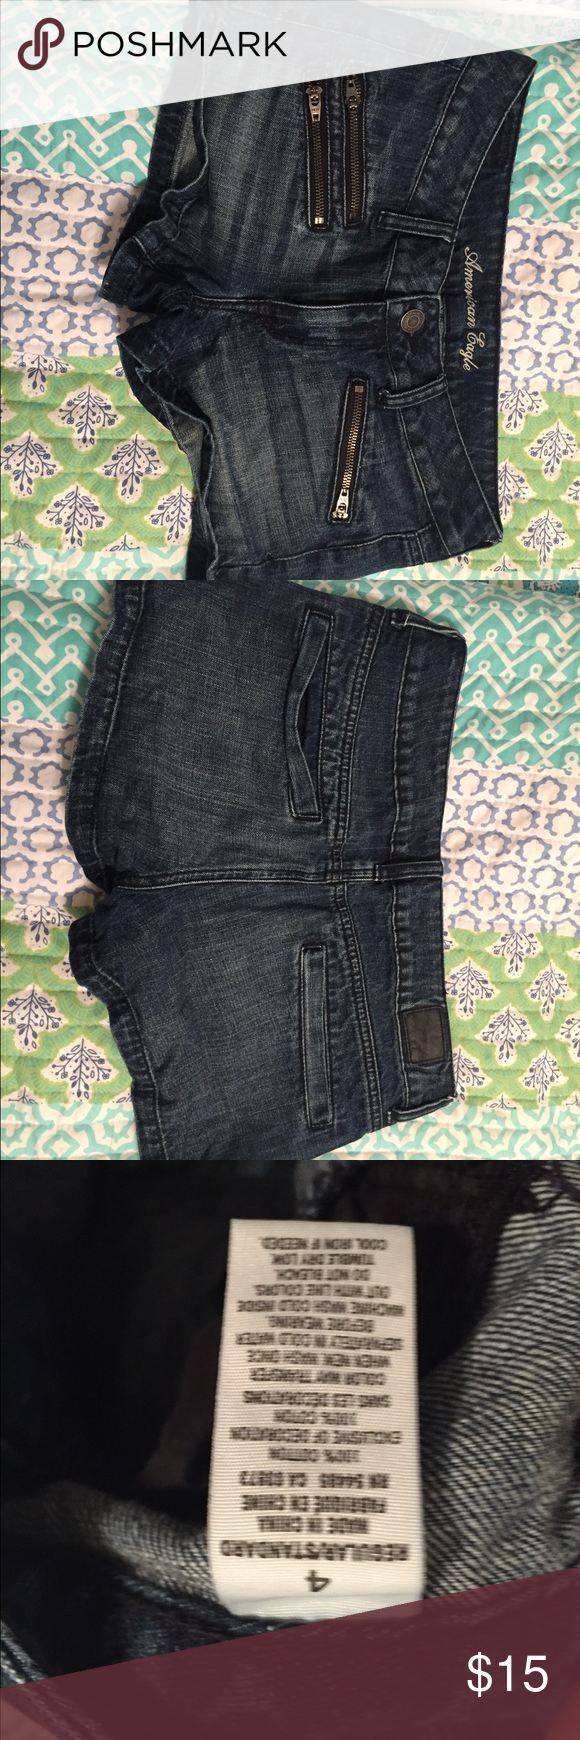 American Eagle Jean Shorts Excellent Used Condition American Eagle Outfitters Shorts Jean Shorts